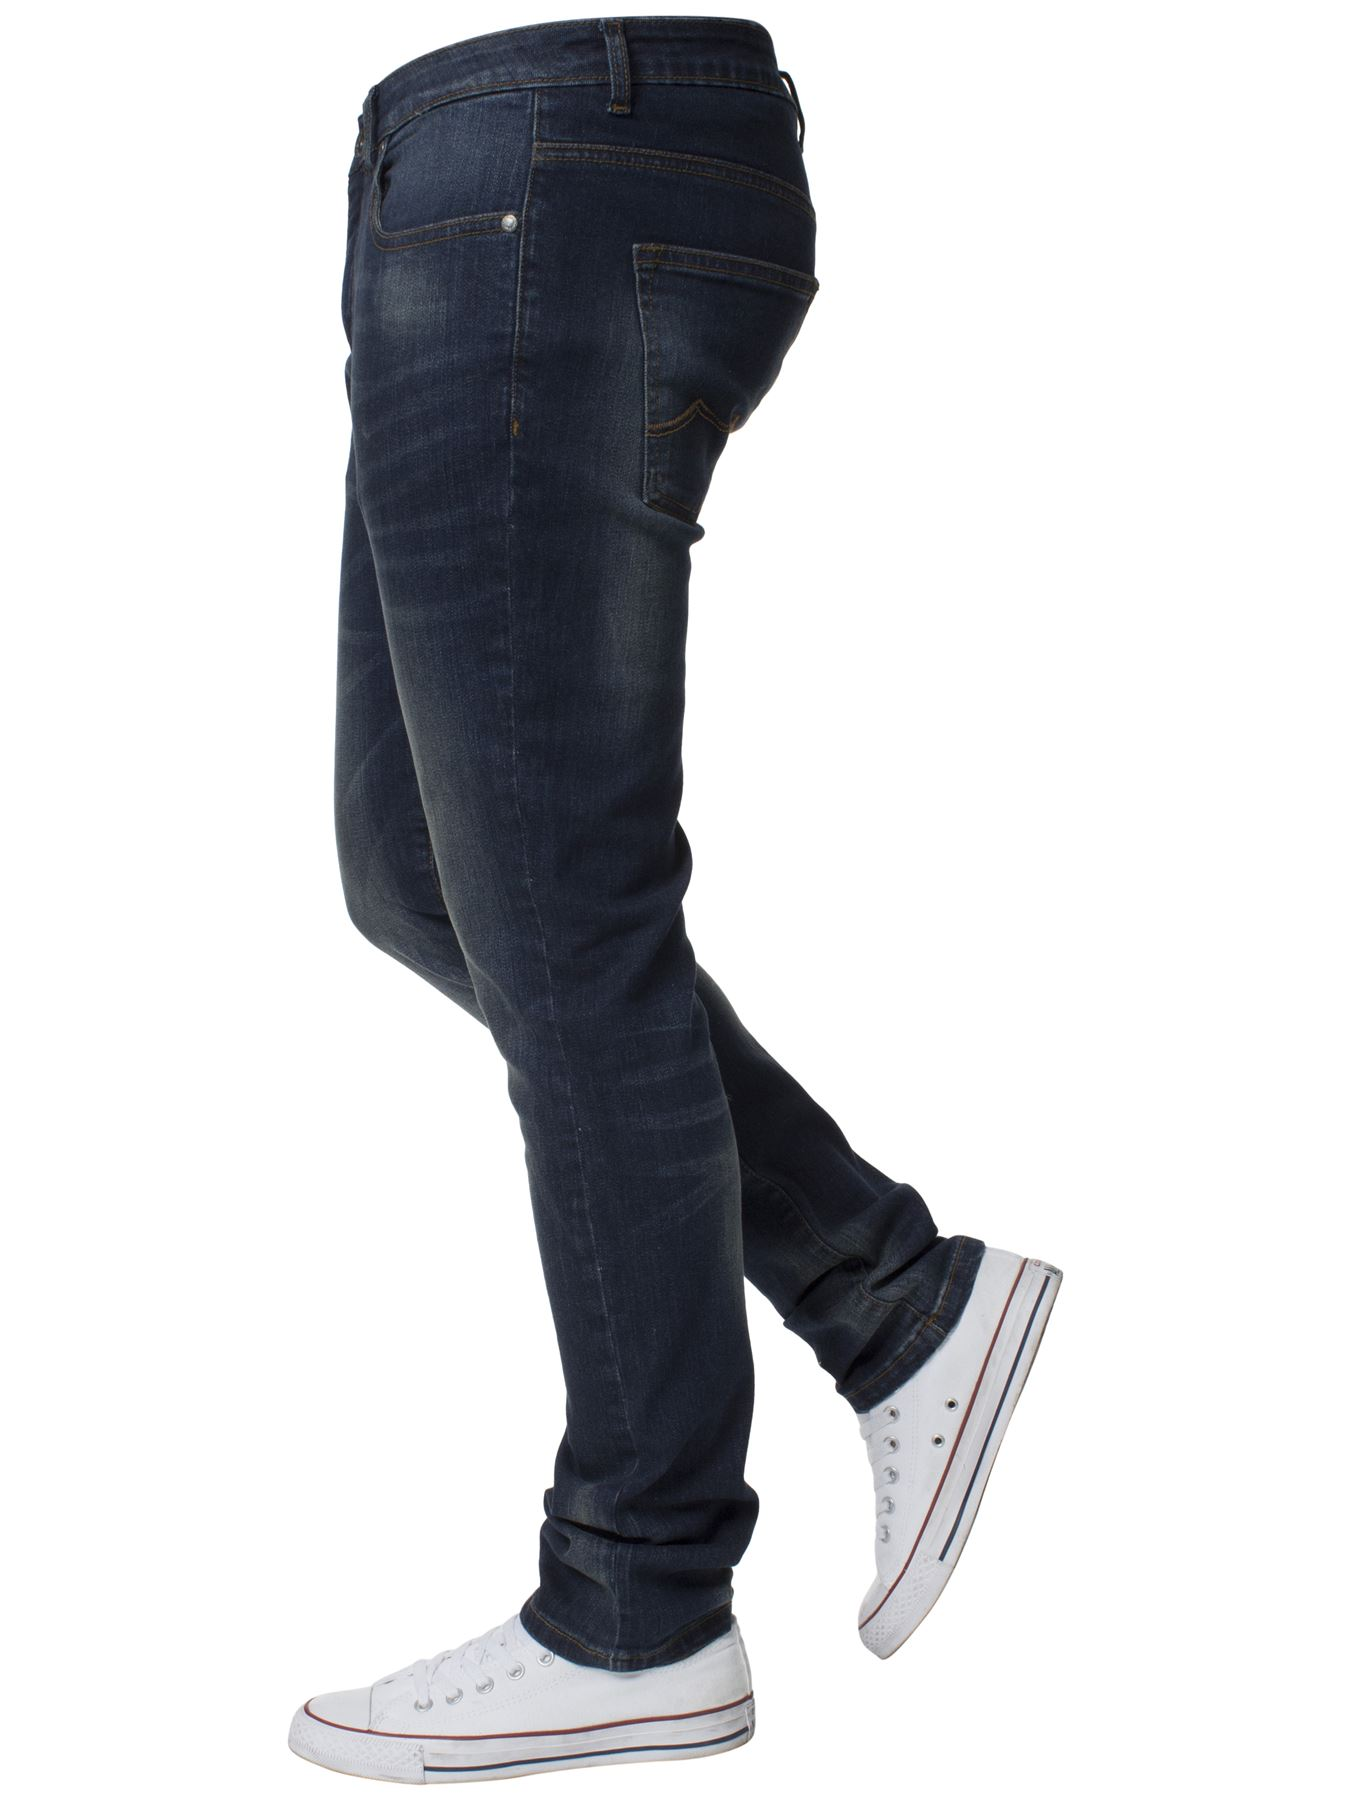 Kruze-Mens-Skinny-Stretch-Flex-Denim-Jeans-Slim-Fit-Trouser-Pants-Big-King-Sizes thumbnail 19